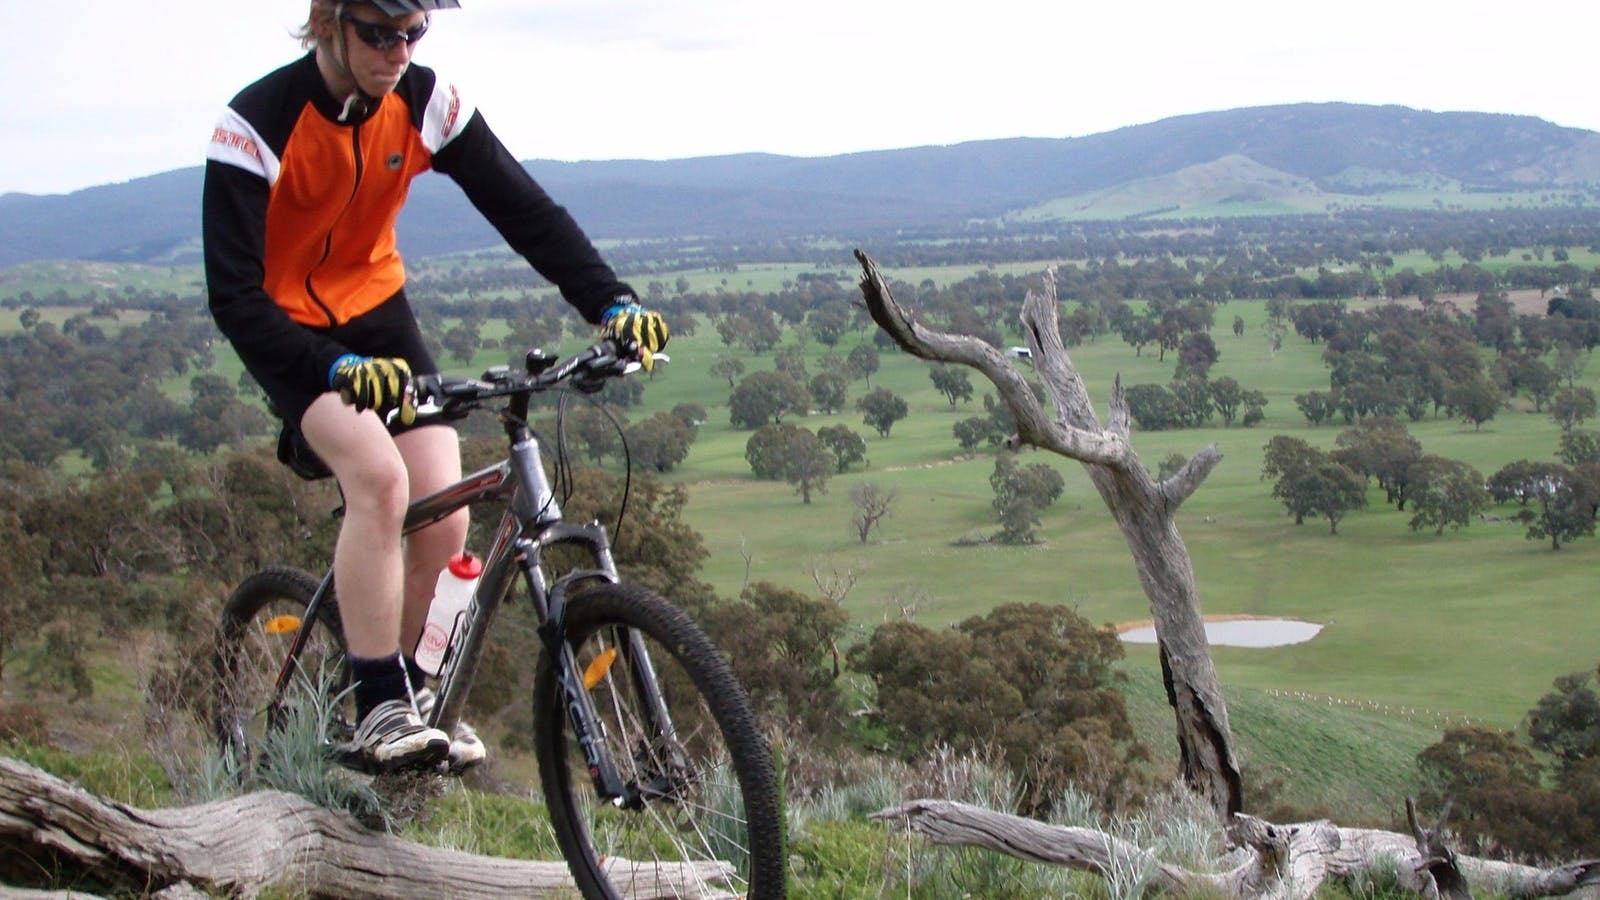 Mountain Bike tracks at Wimmera Hills Winery